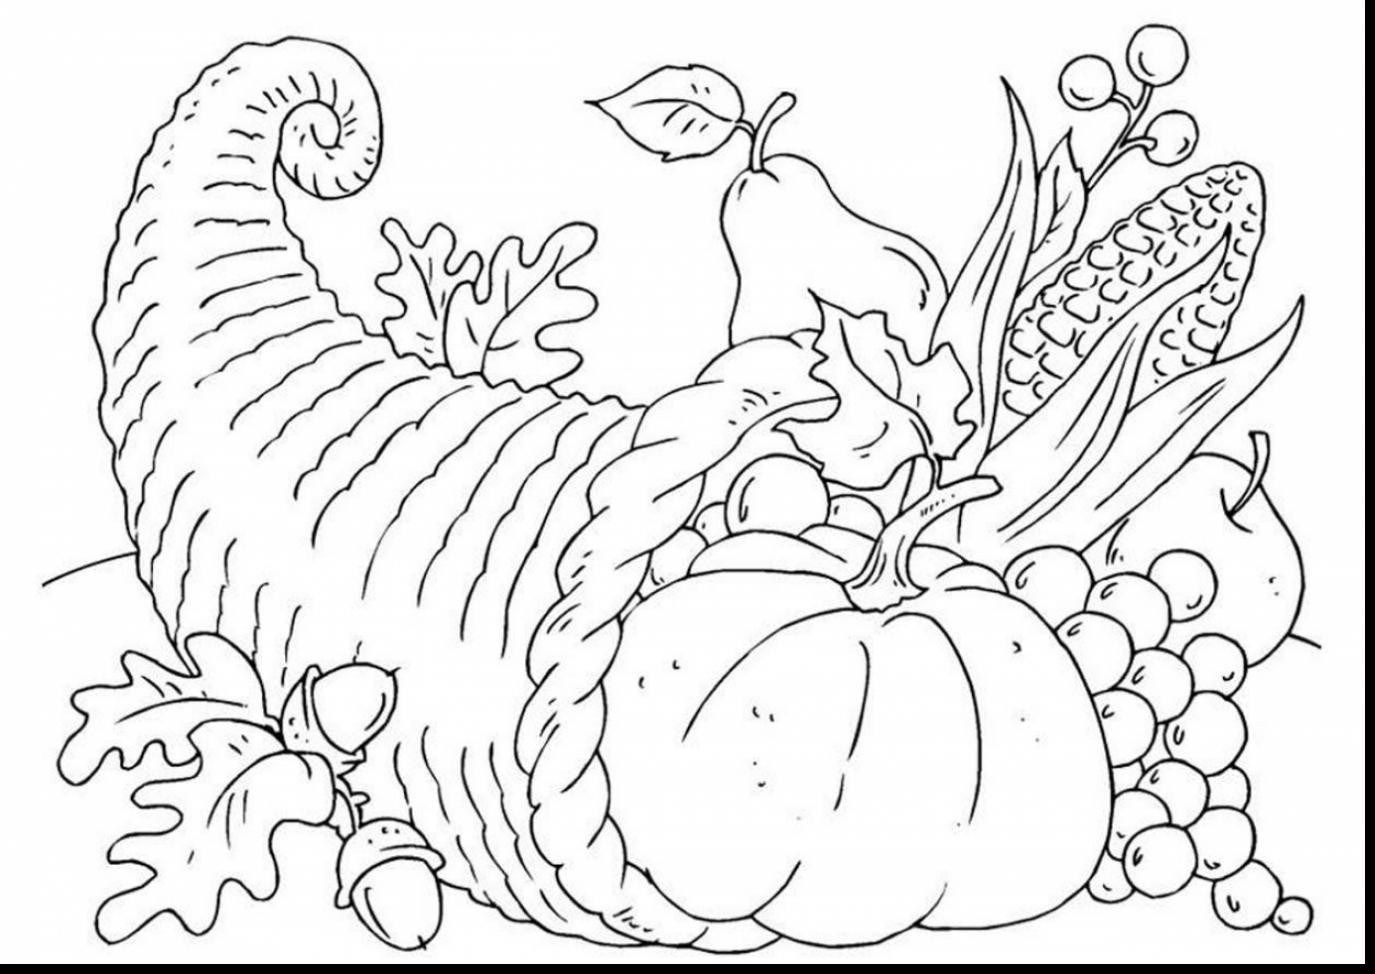 25 Creative Image Of Cornucopia Coloring Pages Davemelillo Com Thanksgiving Coloring Pages Thanksgiving Coloring Book Free Coloring Pages